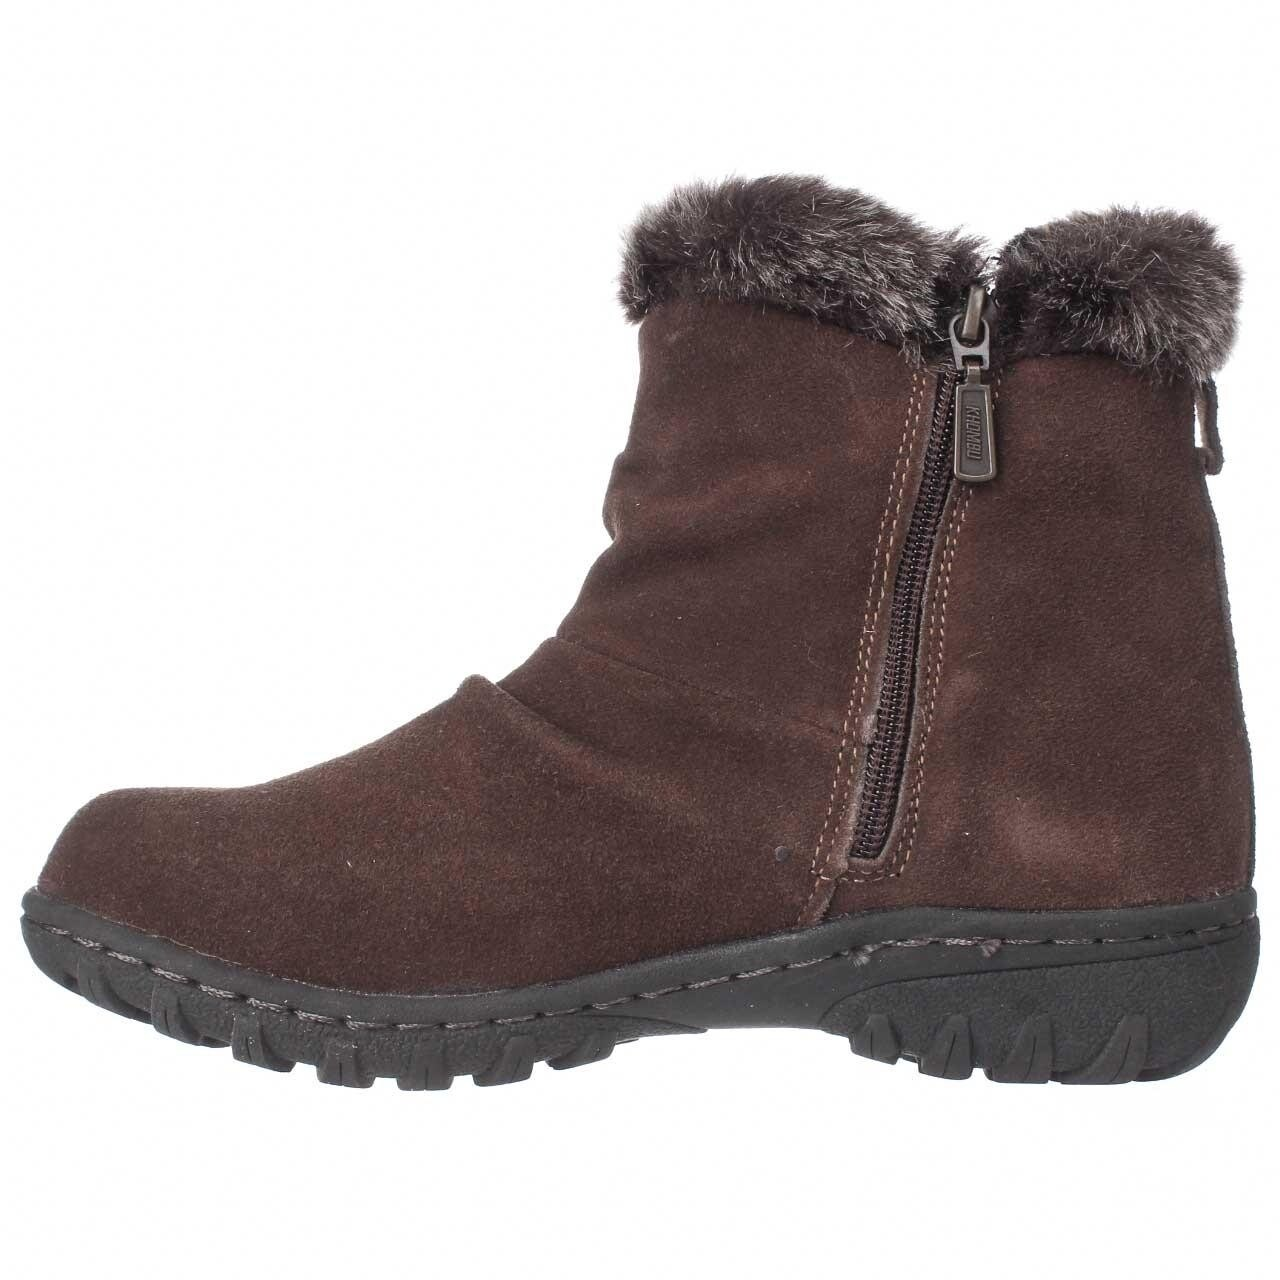 bdc7a7b58a3 Buy Khombu Women's Boots Online at Overstock | Our Best Women's Shoes Deals